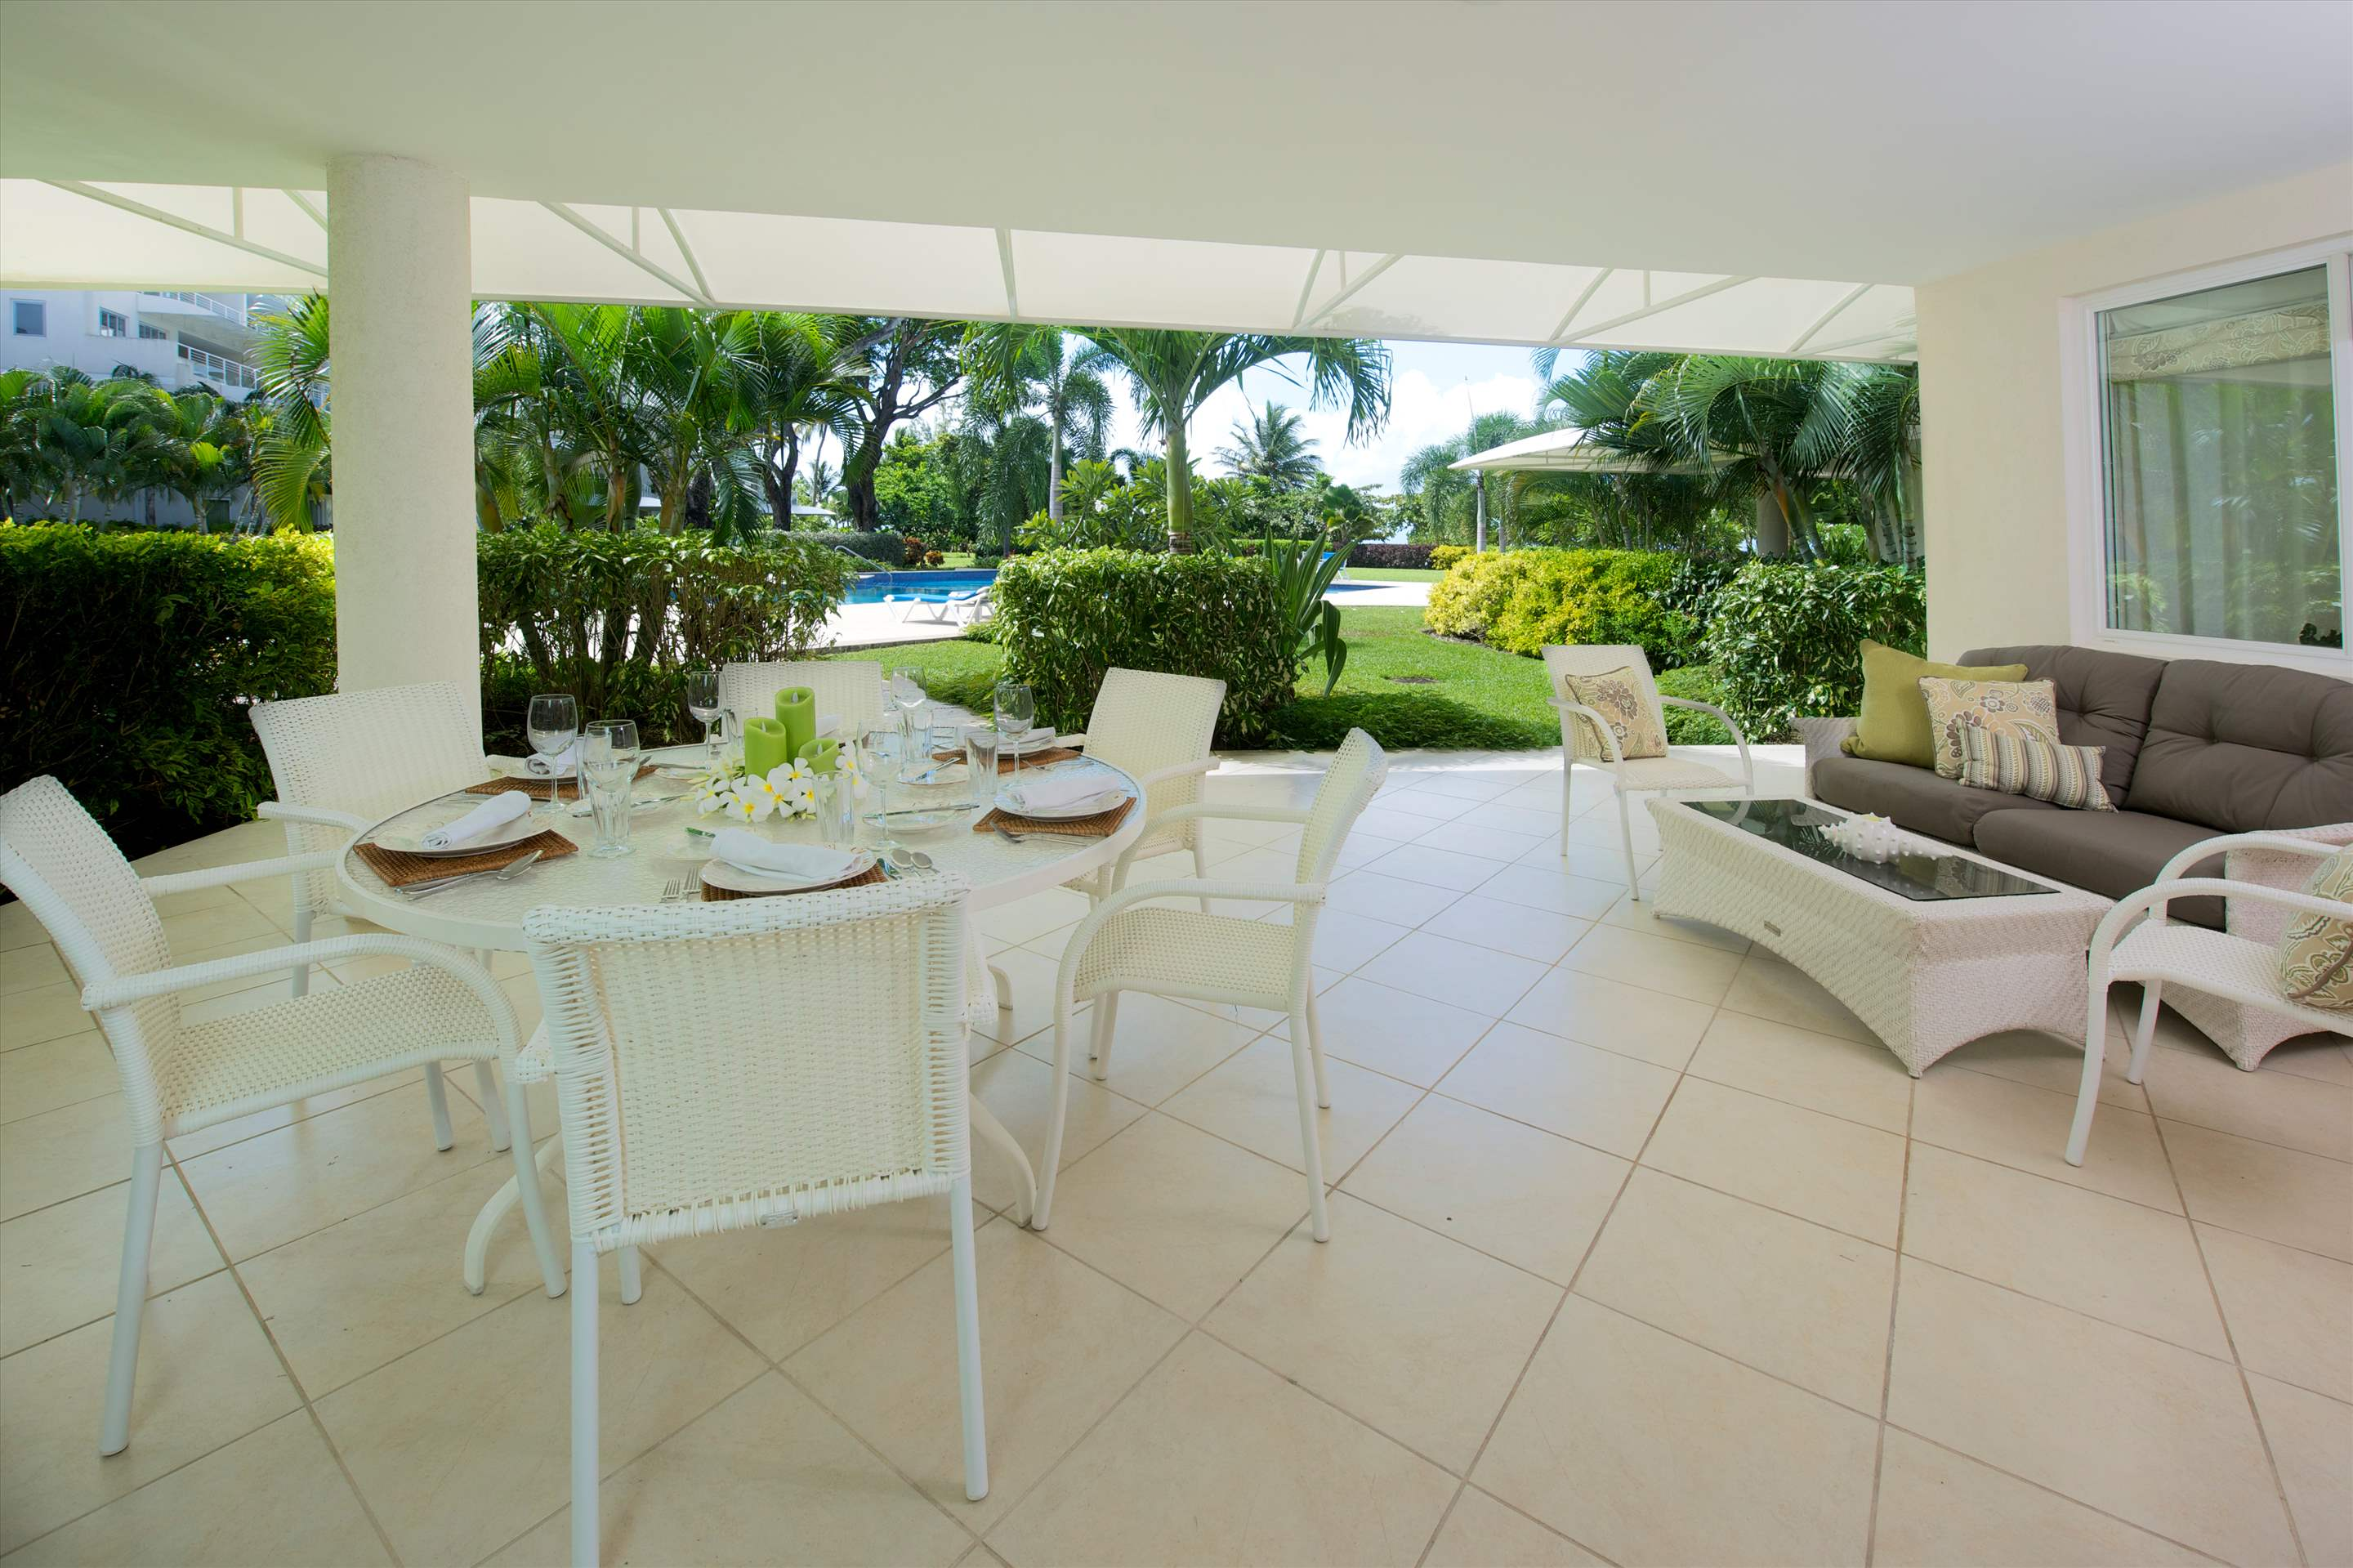 Palm Beach 110, 3 bedroom apartment in St. Lawrence Gap & South Coast, Barbados Photo #1